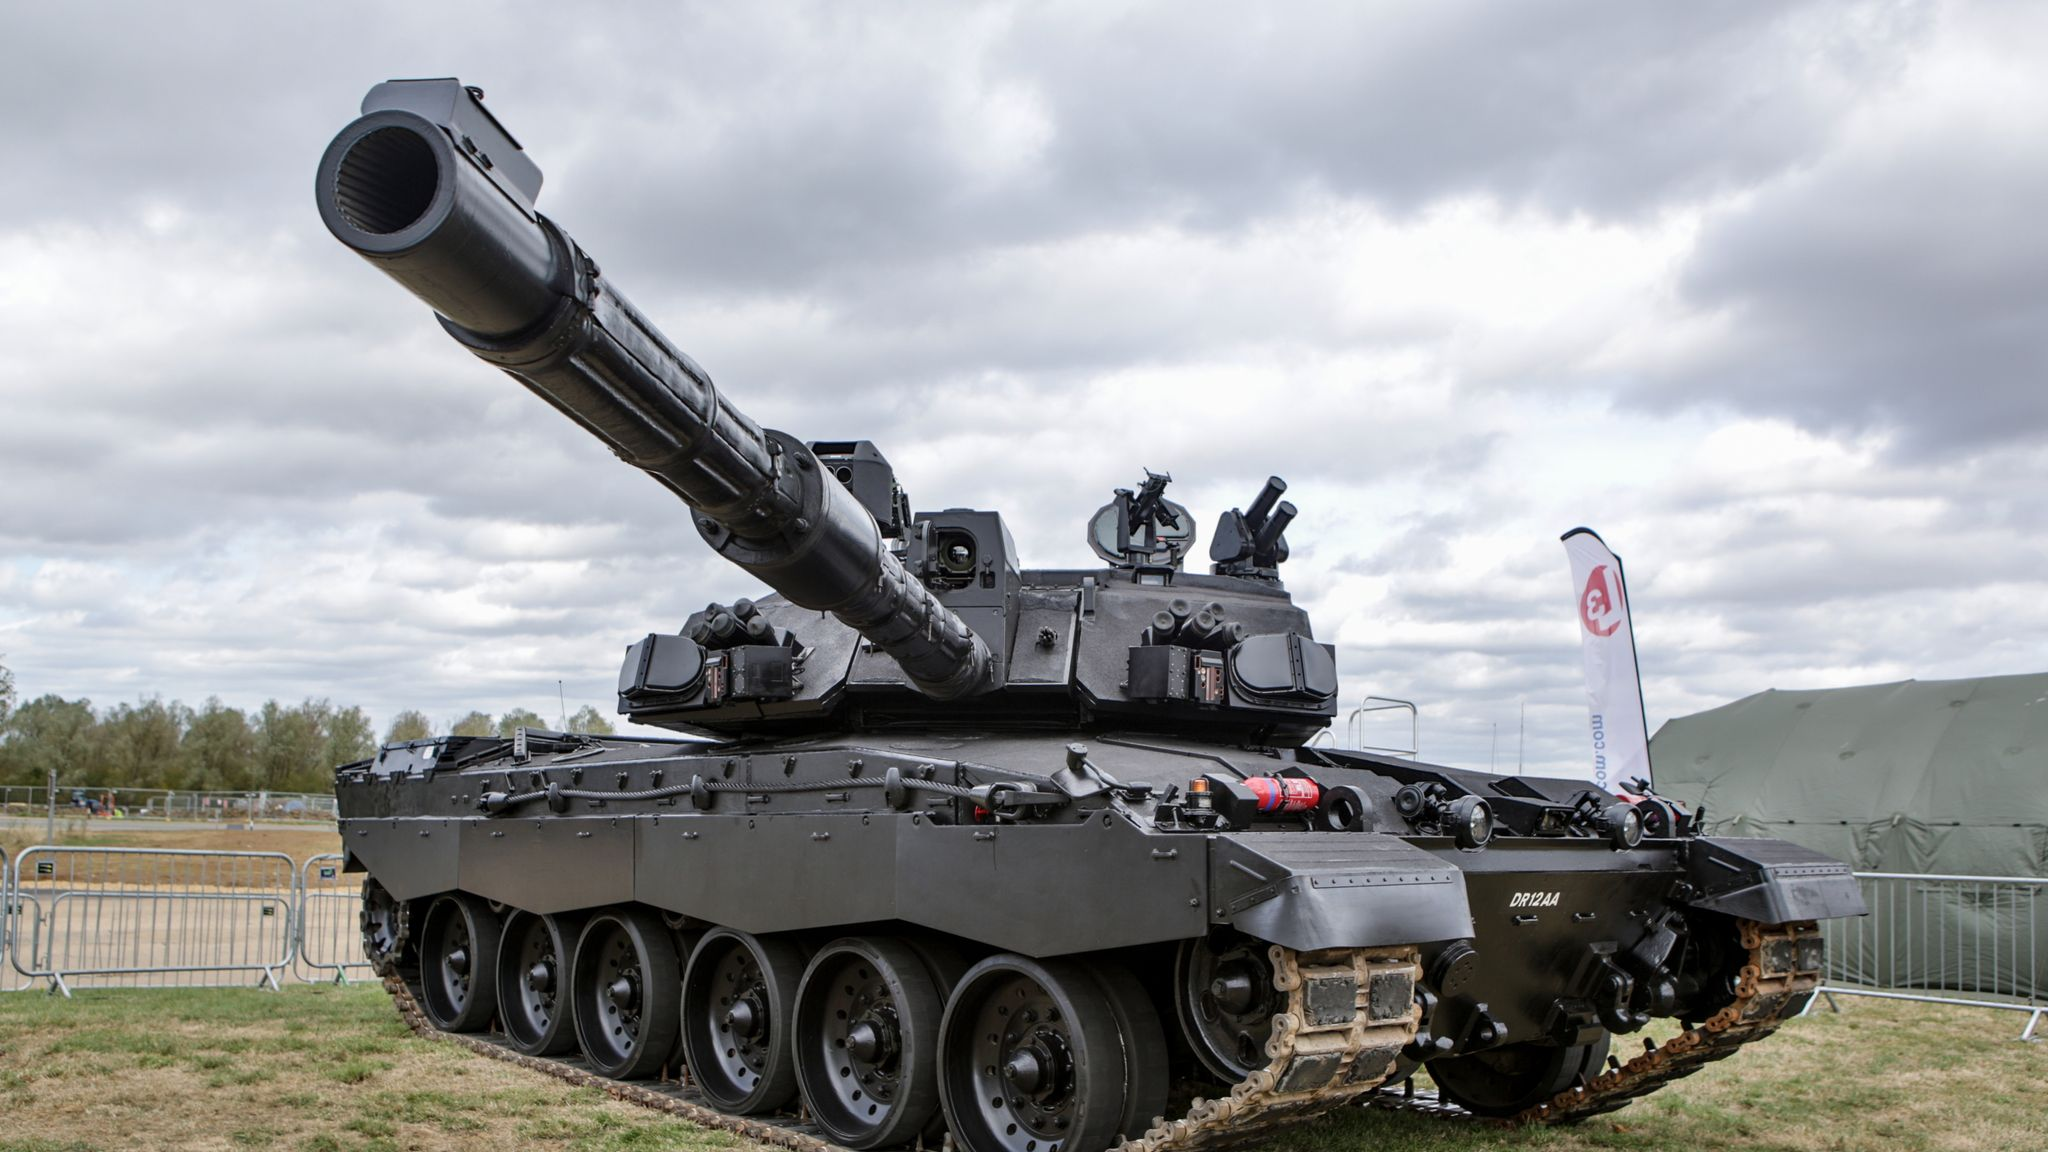 'Black Night': Upgraded tank for UK army unveiled by BAE Systems